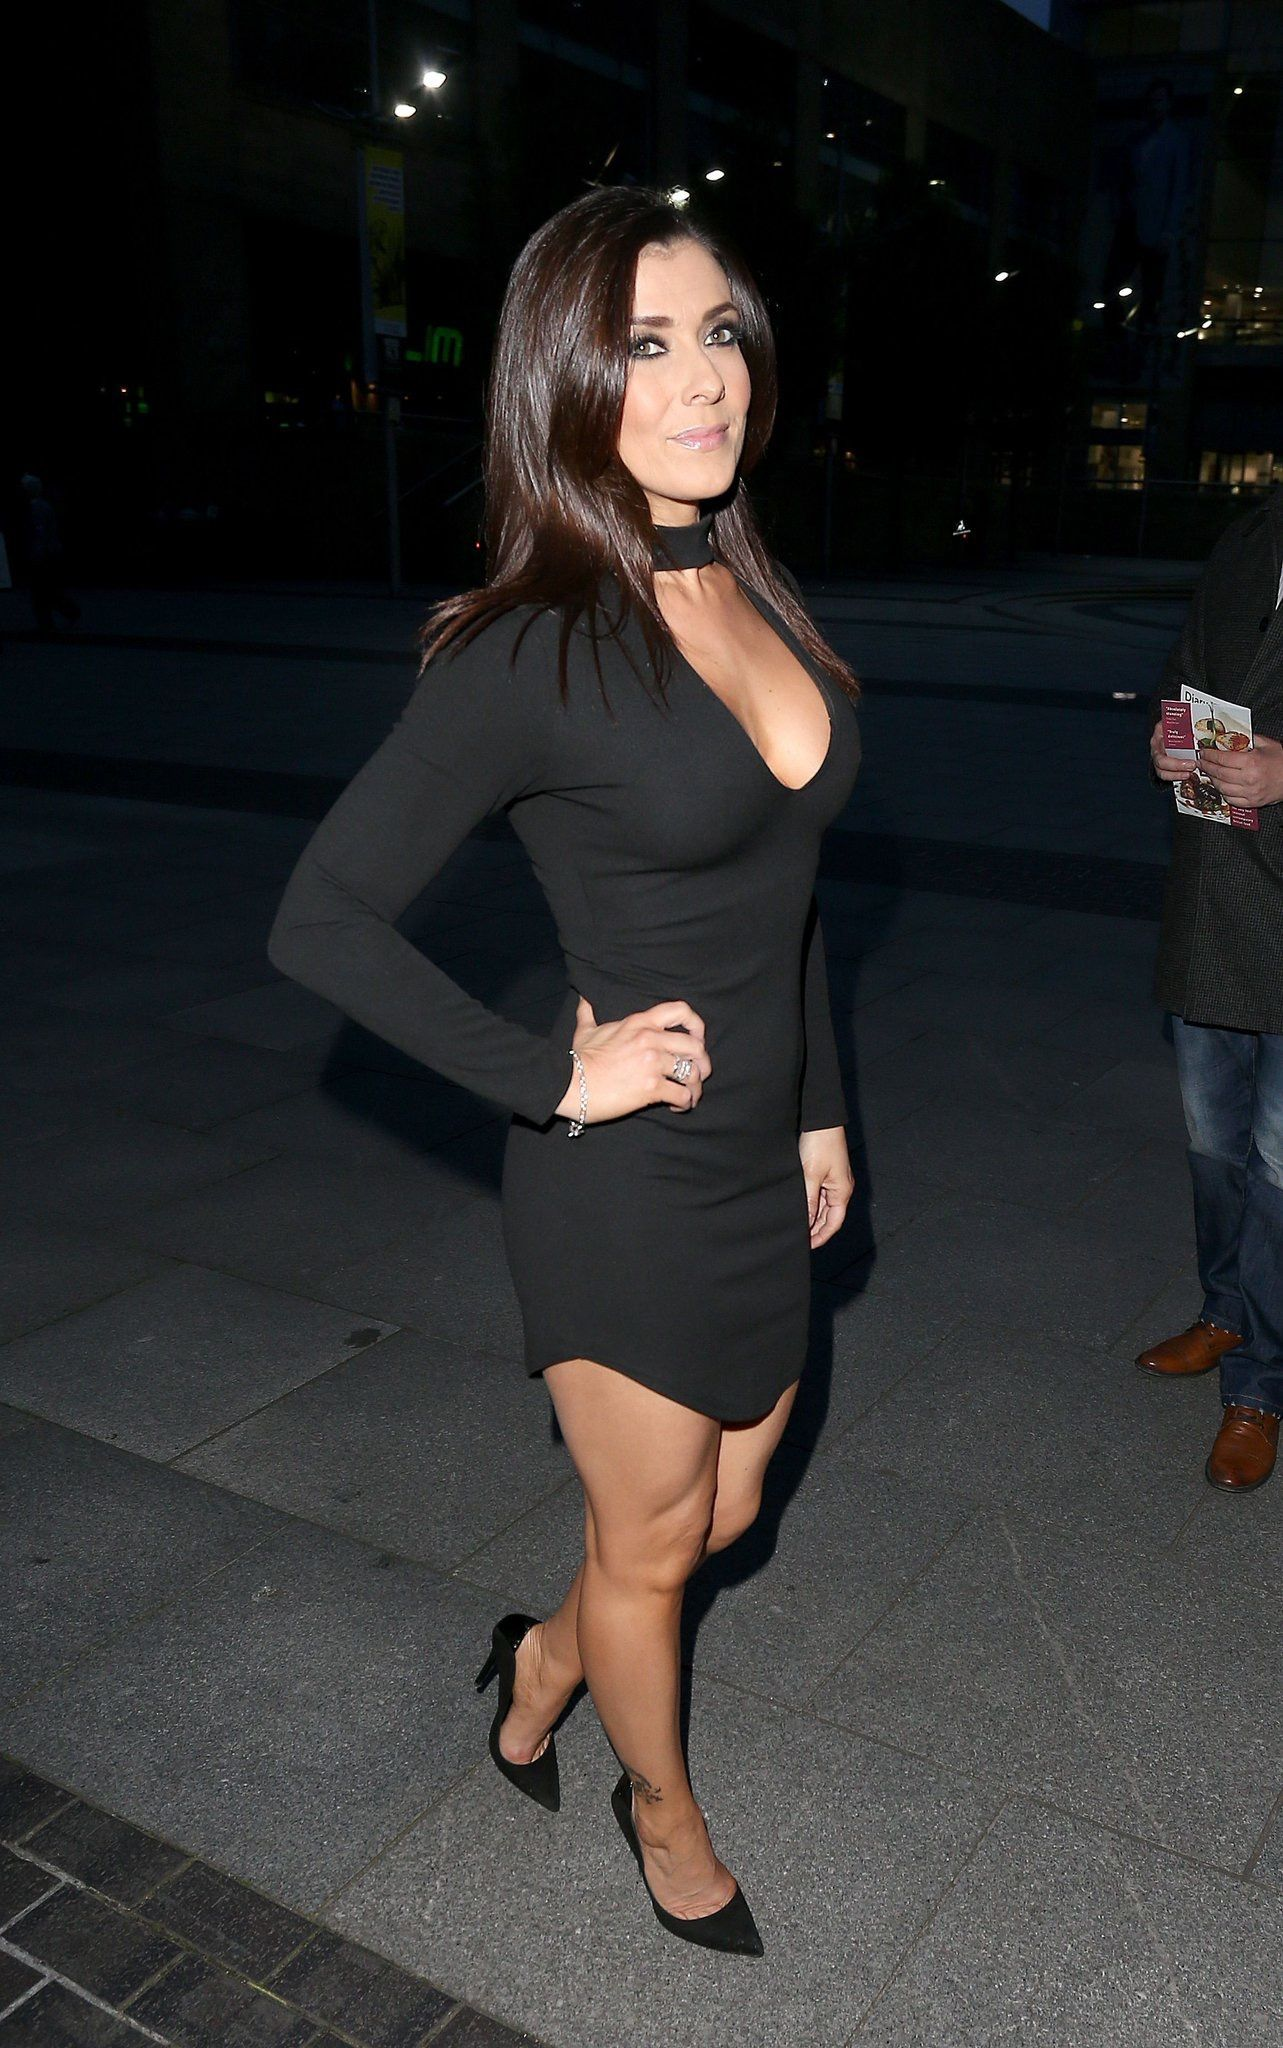 Kym Marsh (born 1976) Kym Marsh (born 1976) new pics